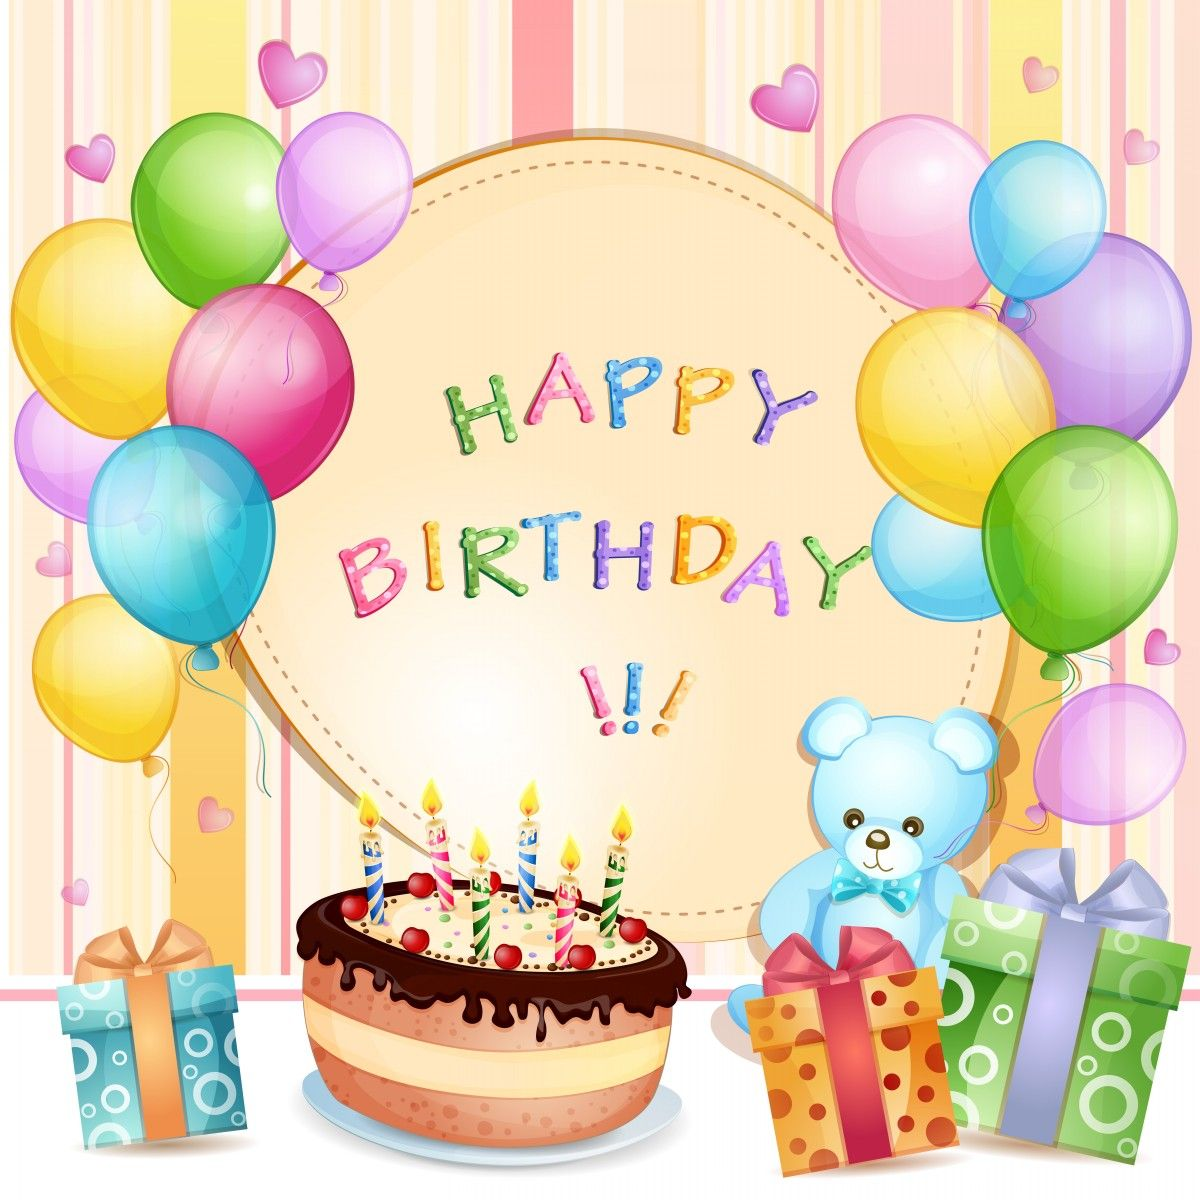 Happy birthday greetings for children a photos pinterest happy happy birthday greetings for children a kristyandbryce Gallery